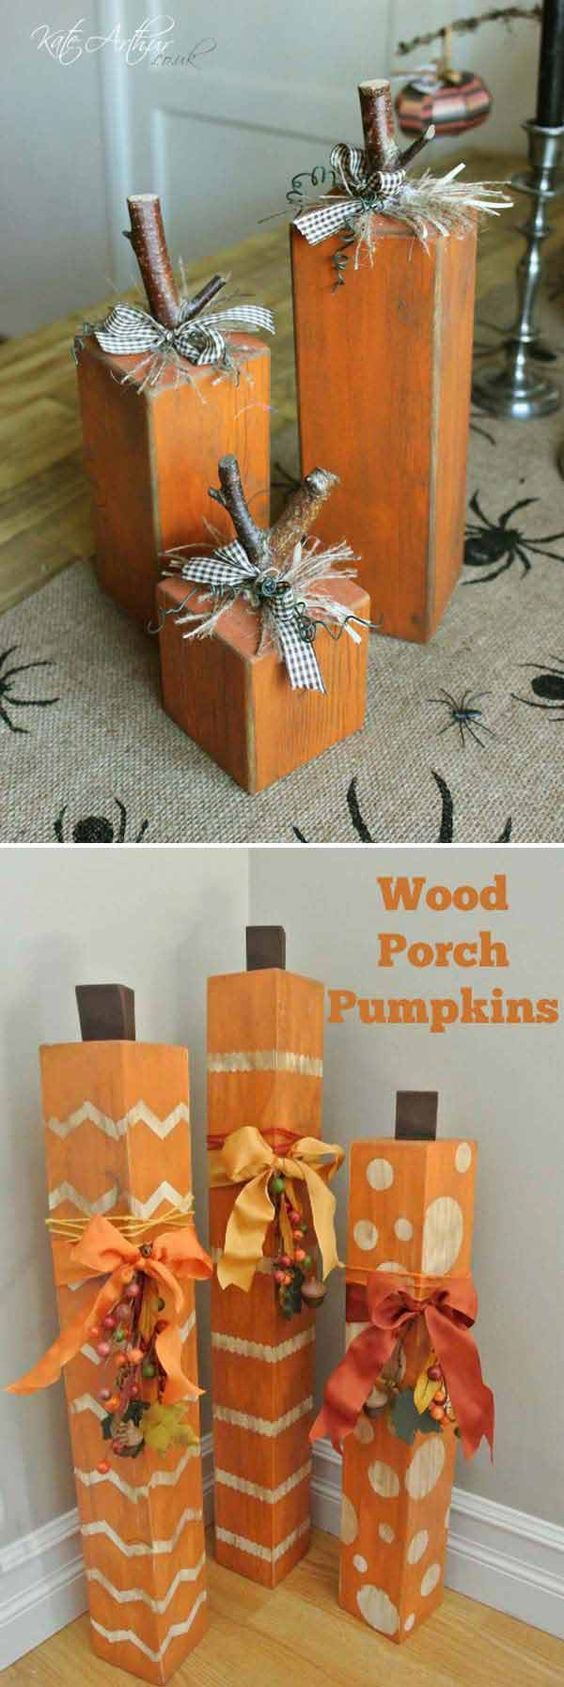 20 Halloween Decorations Crafted from Reclaimed Wood | Wood ...